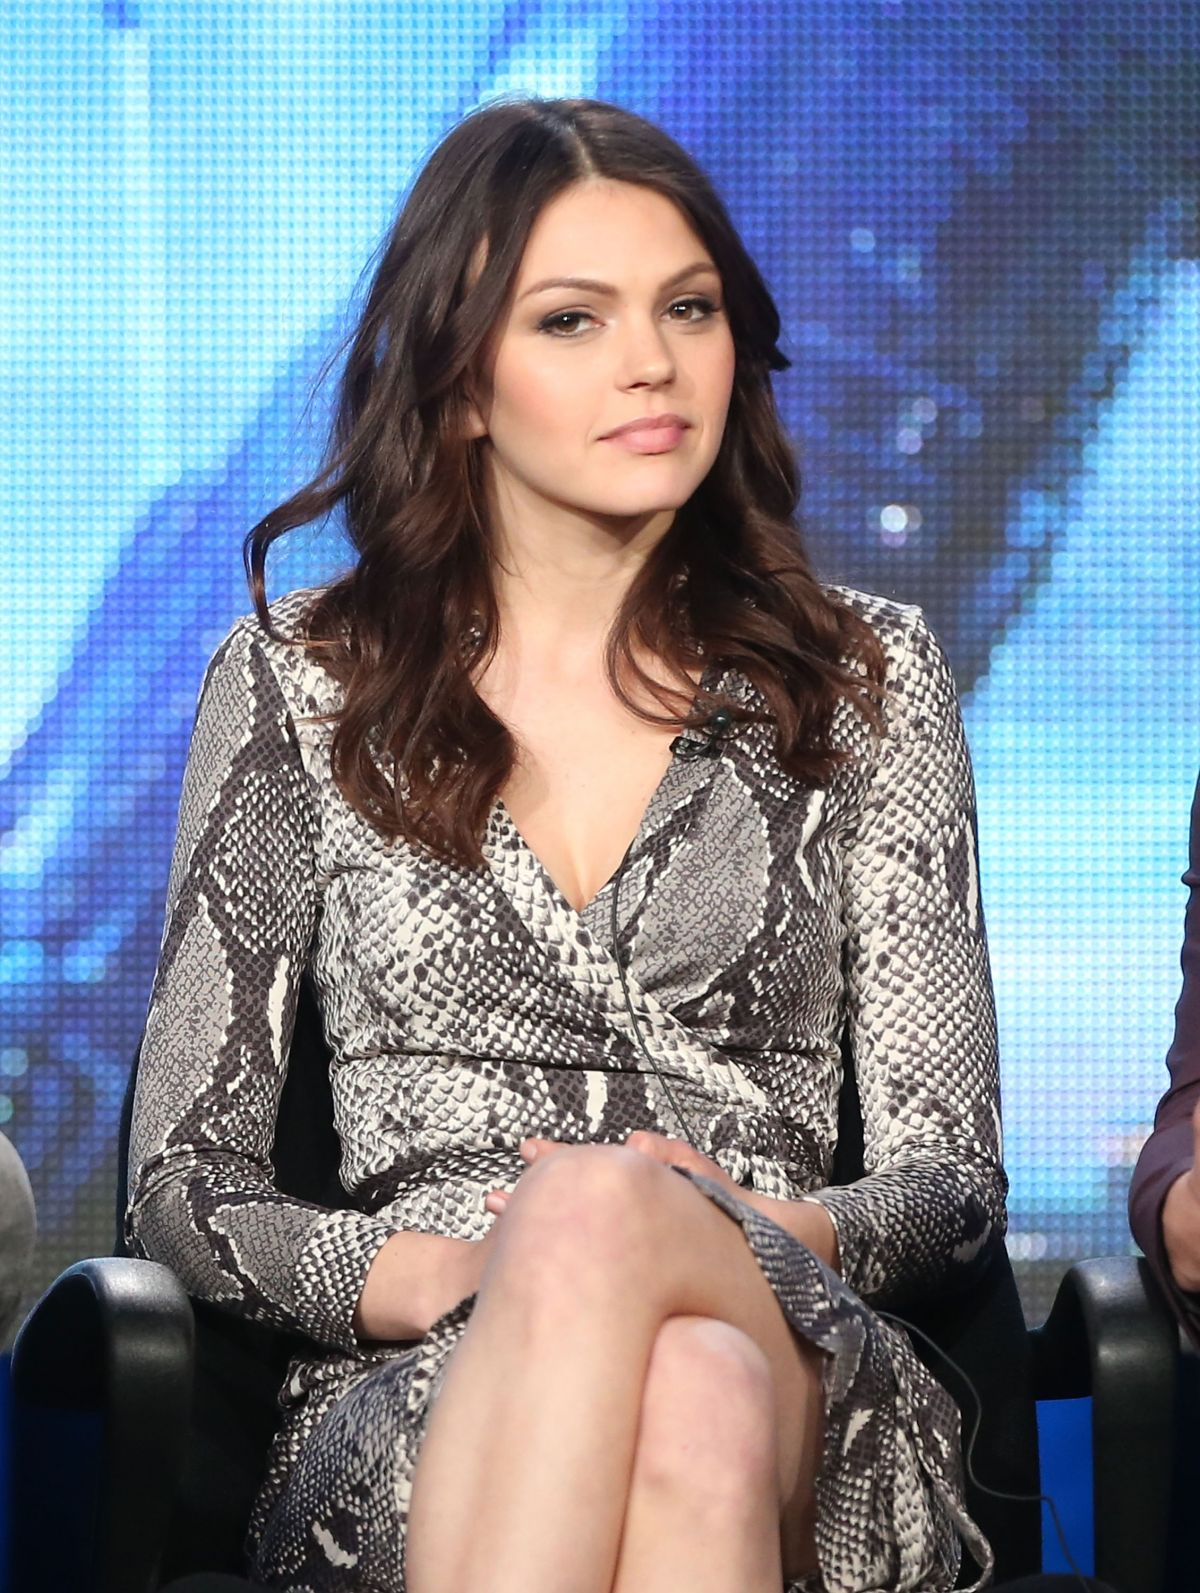 AIMEE TEEGARDEN - Star-crossed Panel at 2014 TCA Presentations in Pasadena